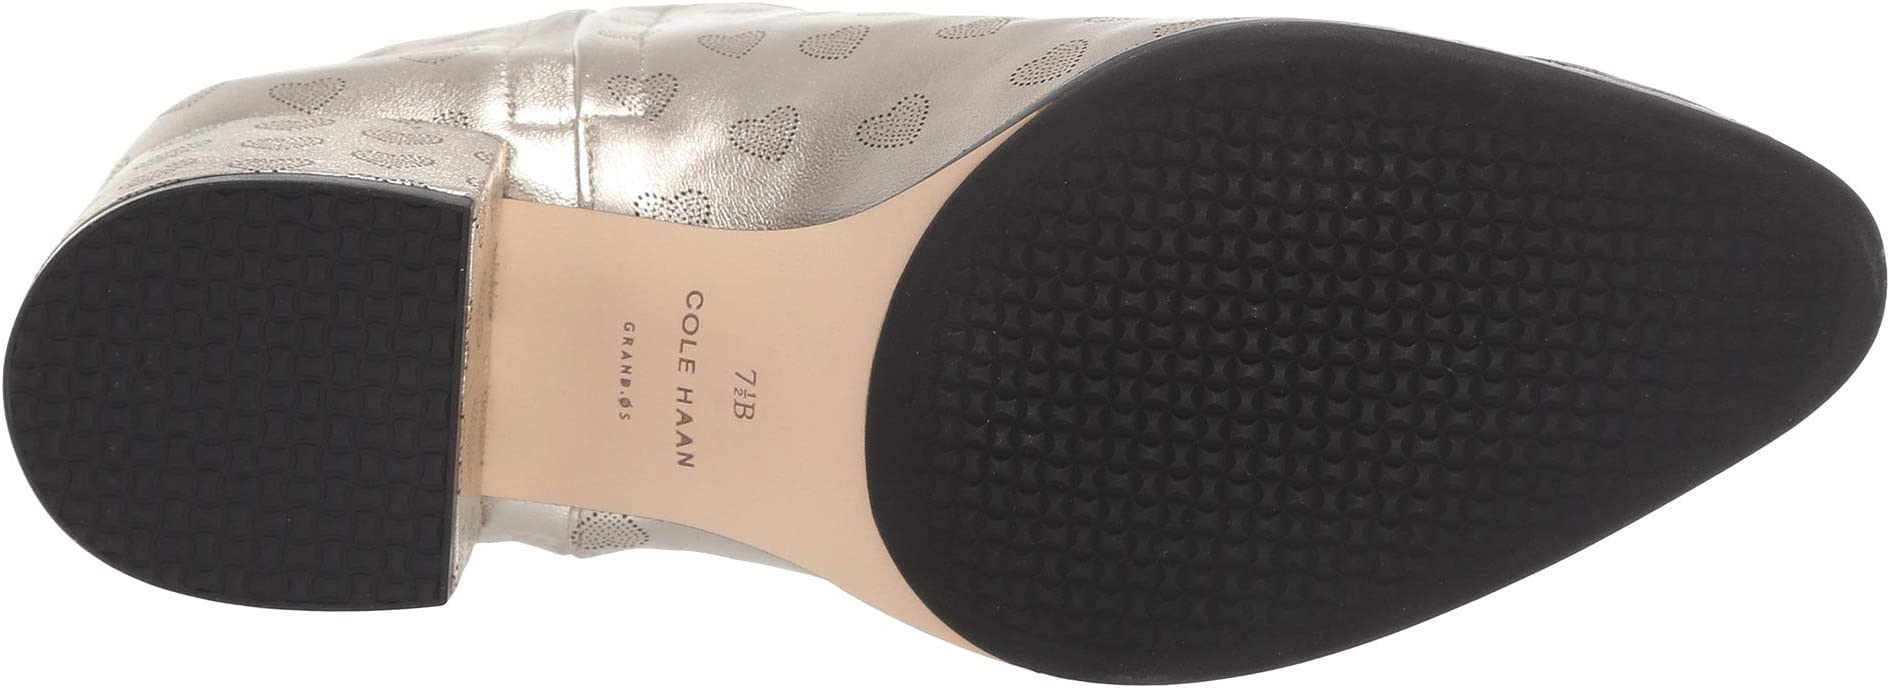 Cole Haan Grand Ambition Bootie (55 mm) | Women's shoes | 2020 Newest